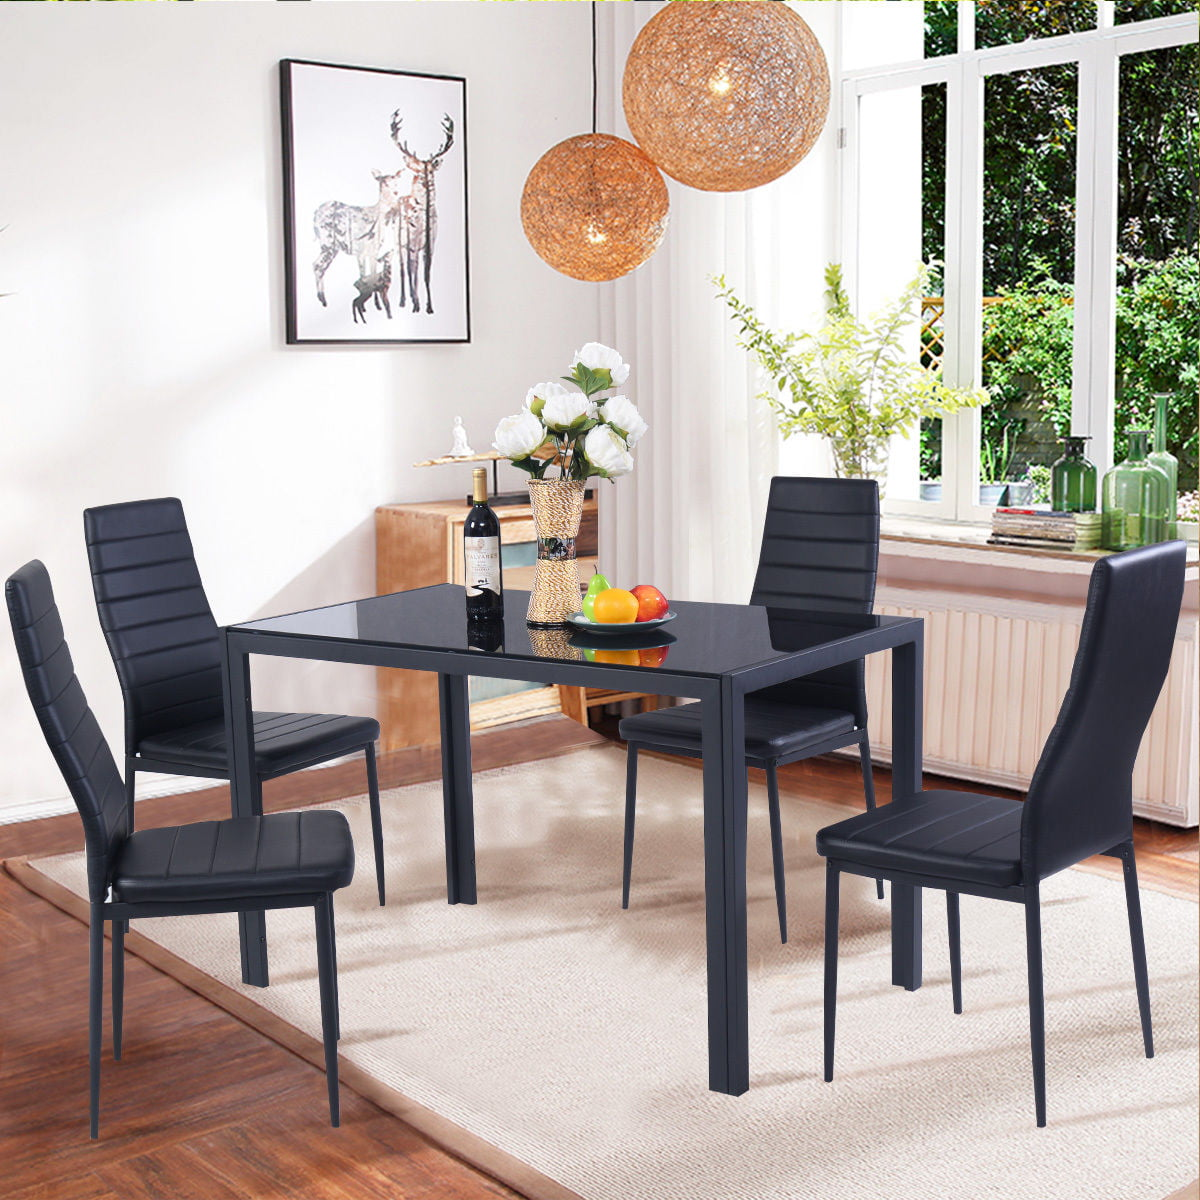 Costway 5 Piece Kitchen Dining Set Glass Metal Table and 4 Chairs Breakfast  Furniture   Walmart comCostway 5 Piece Kitchen Dining Set Glass Metal Table and 4 Chairs  . Metal Dining Room Table Sets. Home Design Ideas